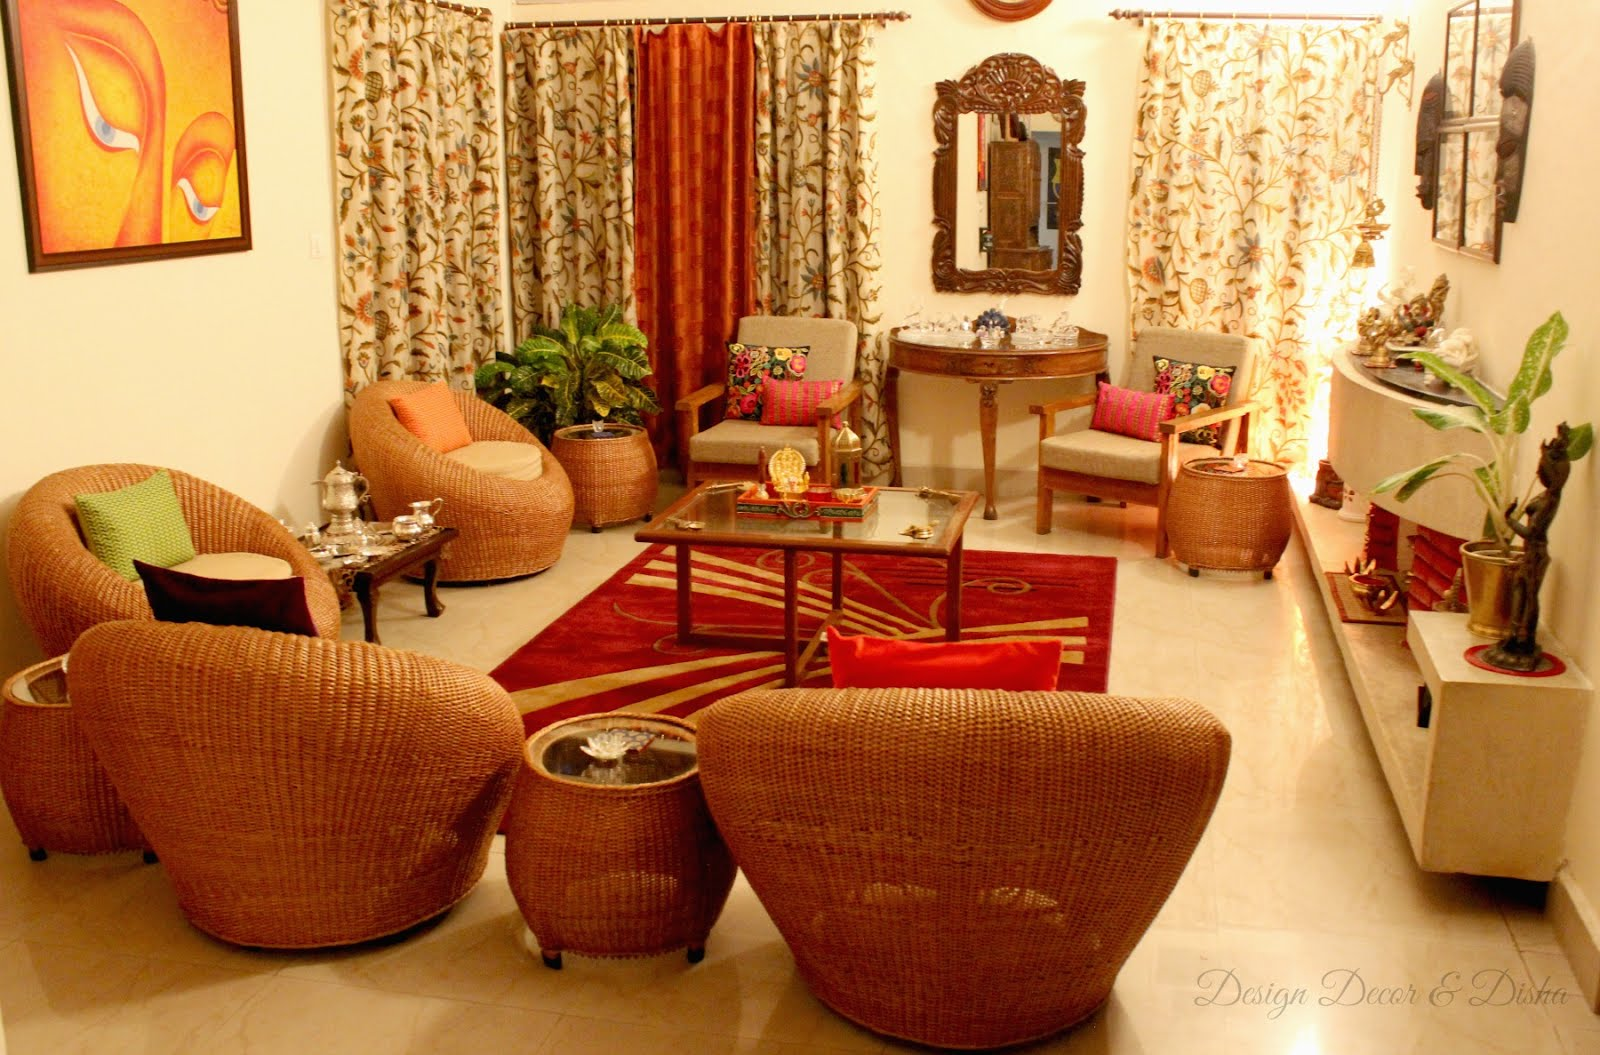 Design decor disha an indian design decor blog home for Living room ideas indian